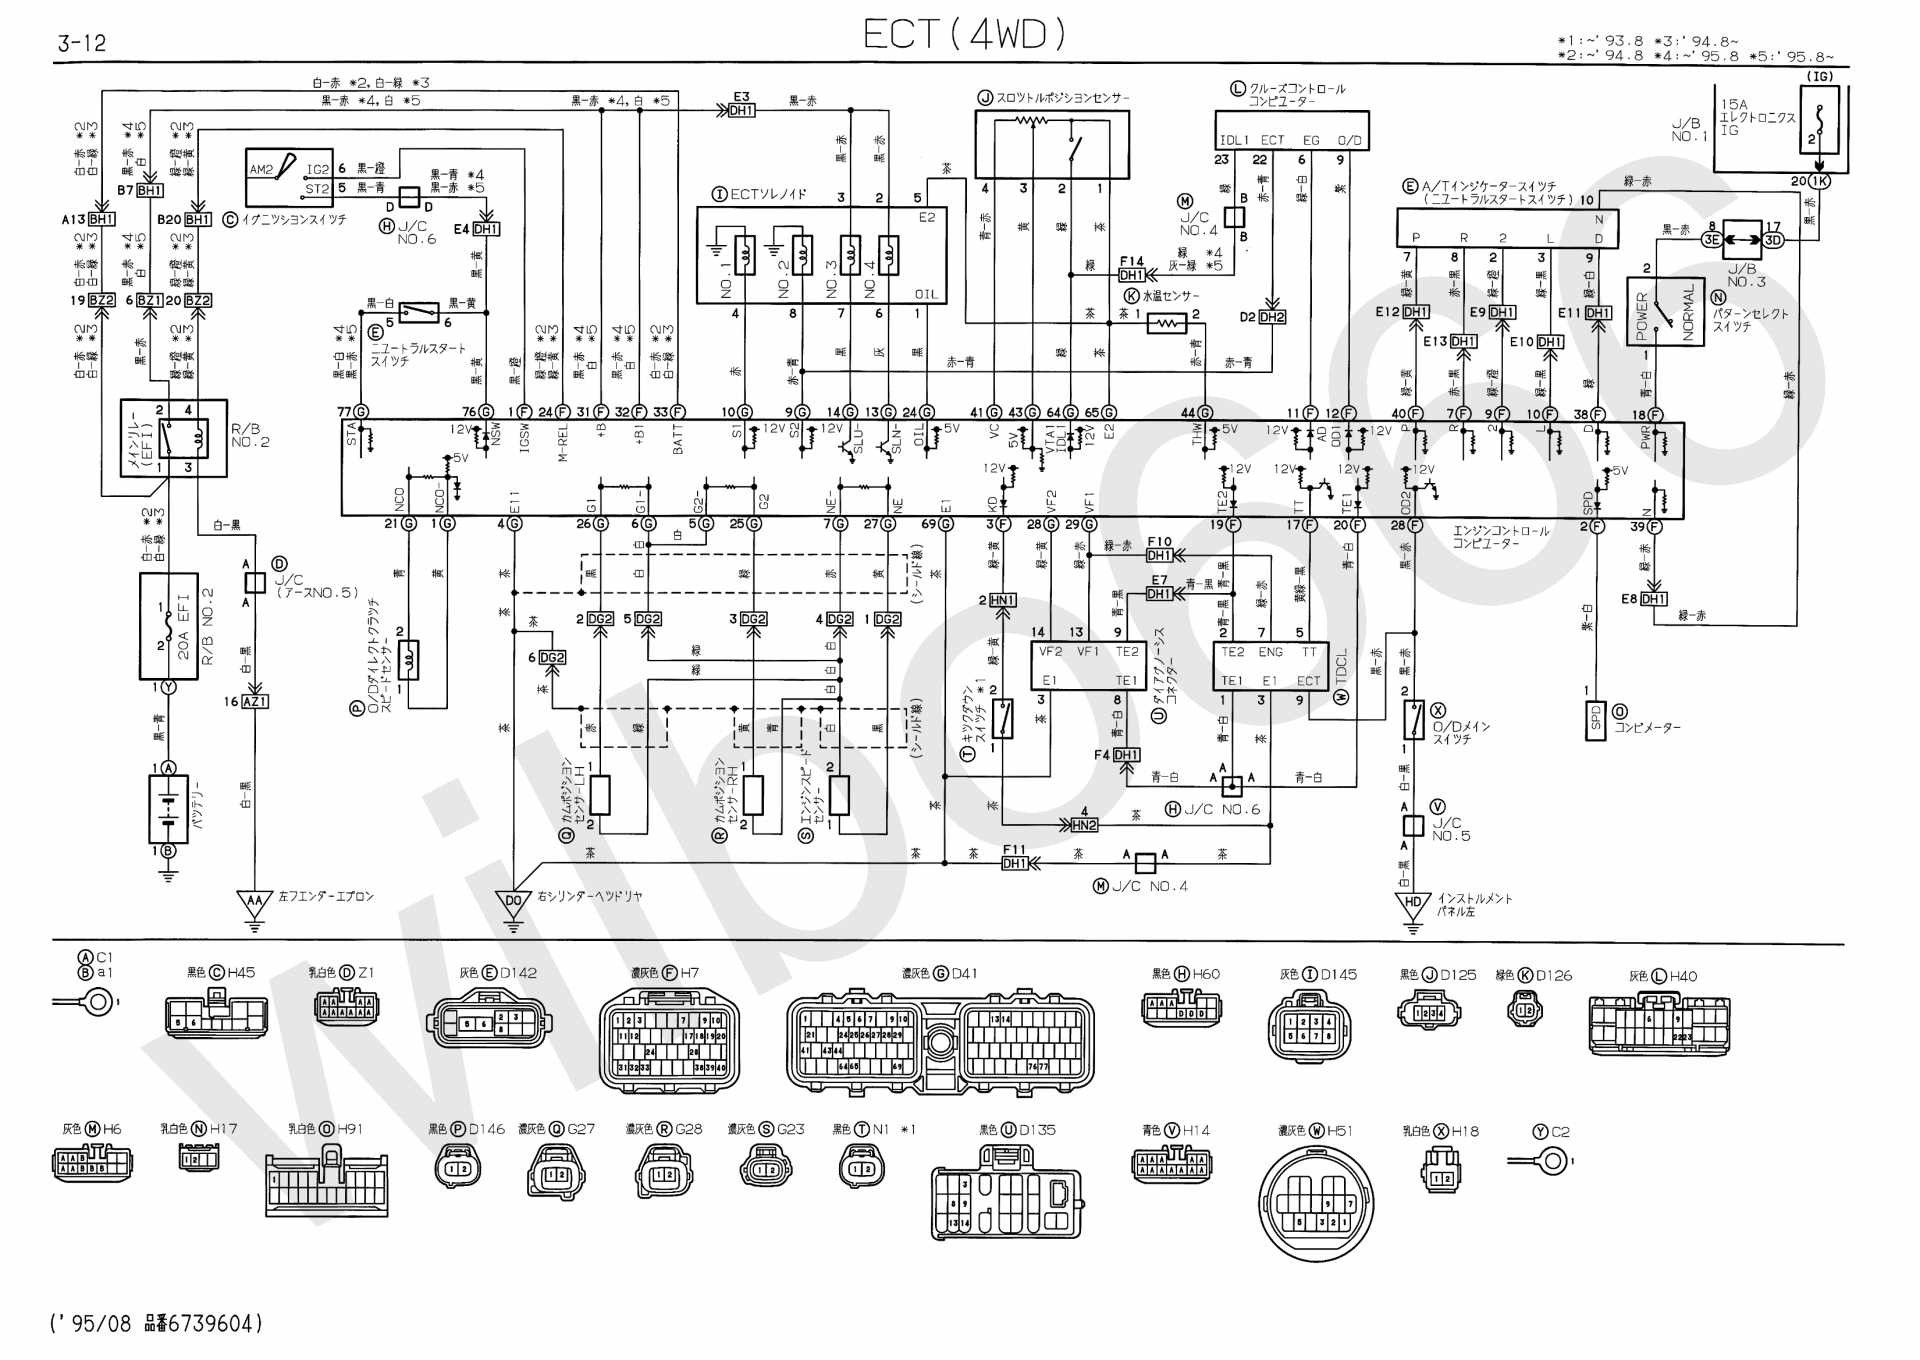 House Wiring Diagram Plans For Kids And Ka24e Diagrams Houses Maf Of